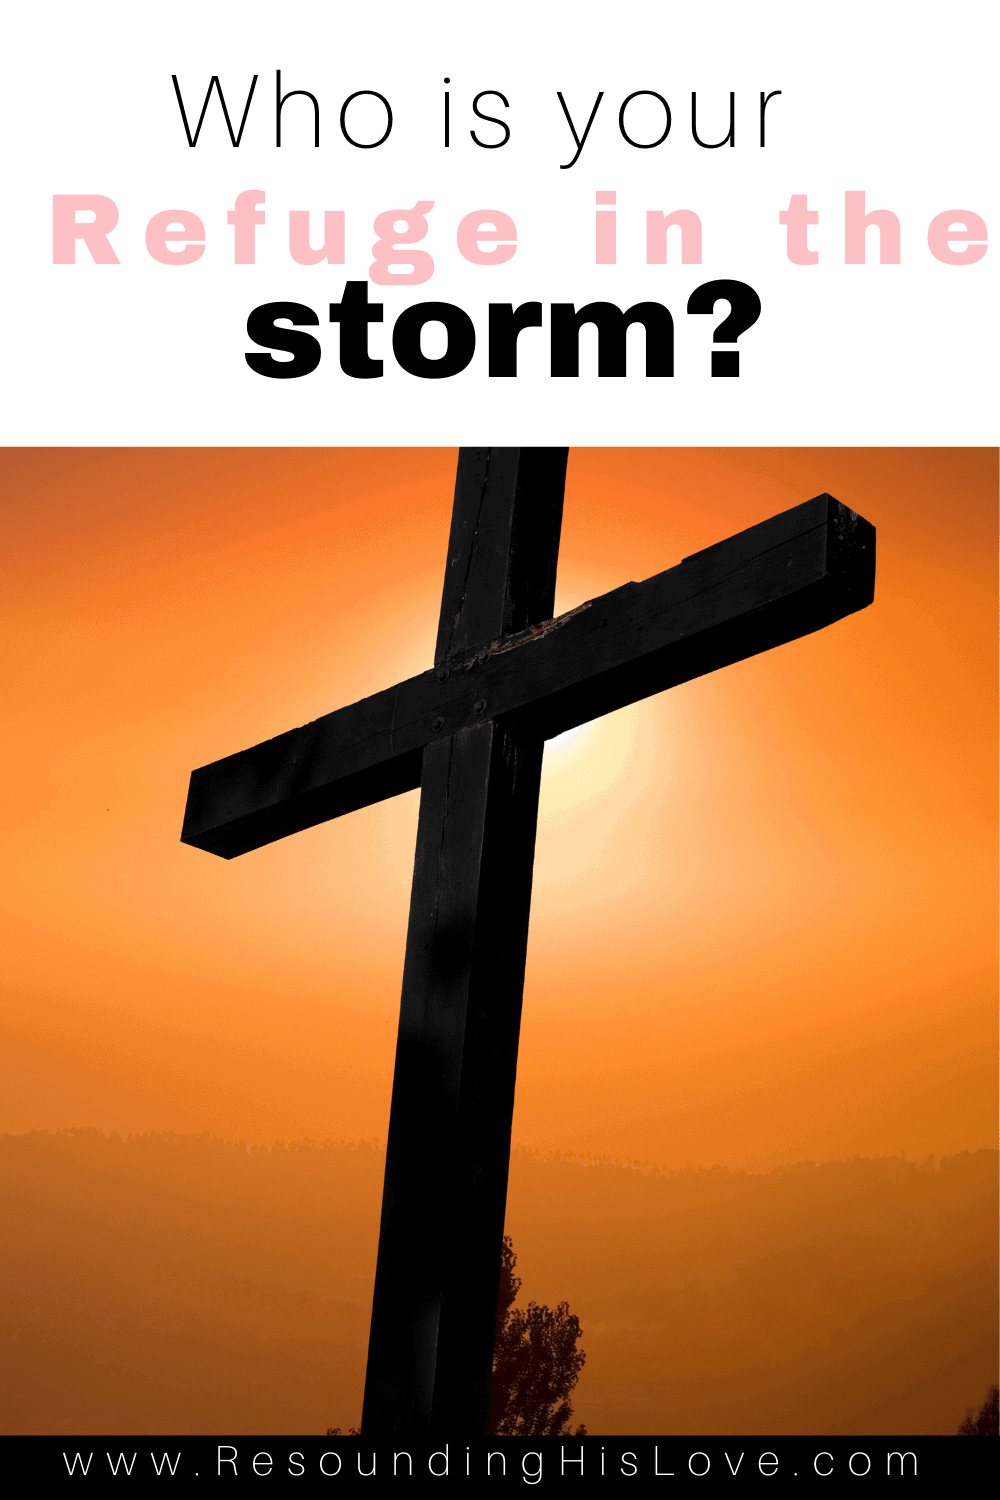 a large cross in a golden sunset background with text Who is Your Refuge in the Storm?